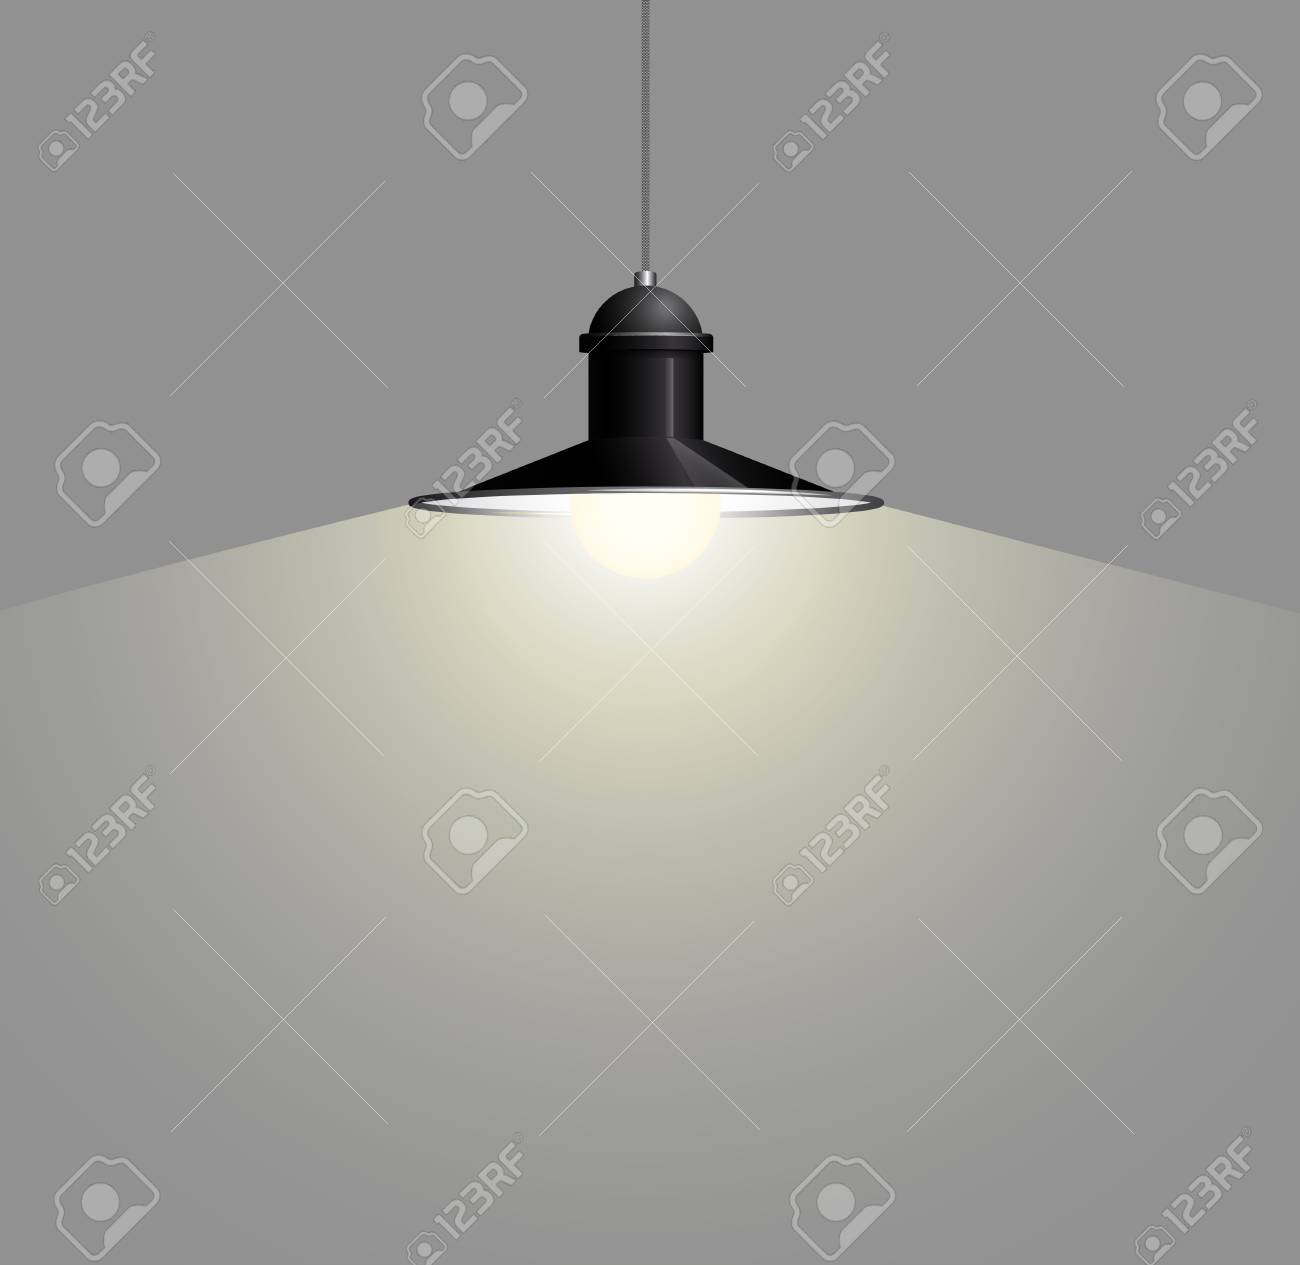 Draht Lampe Stock Photo